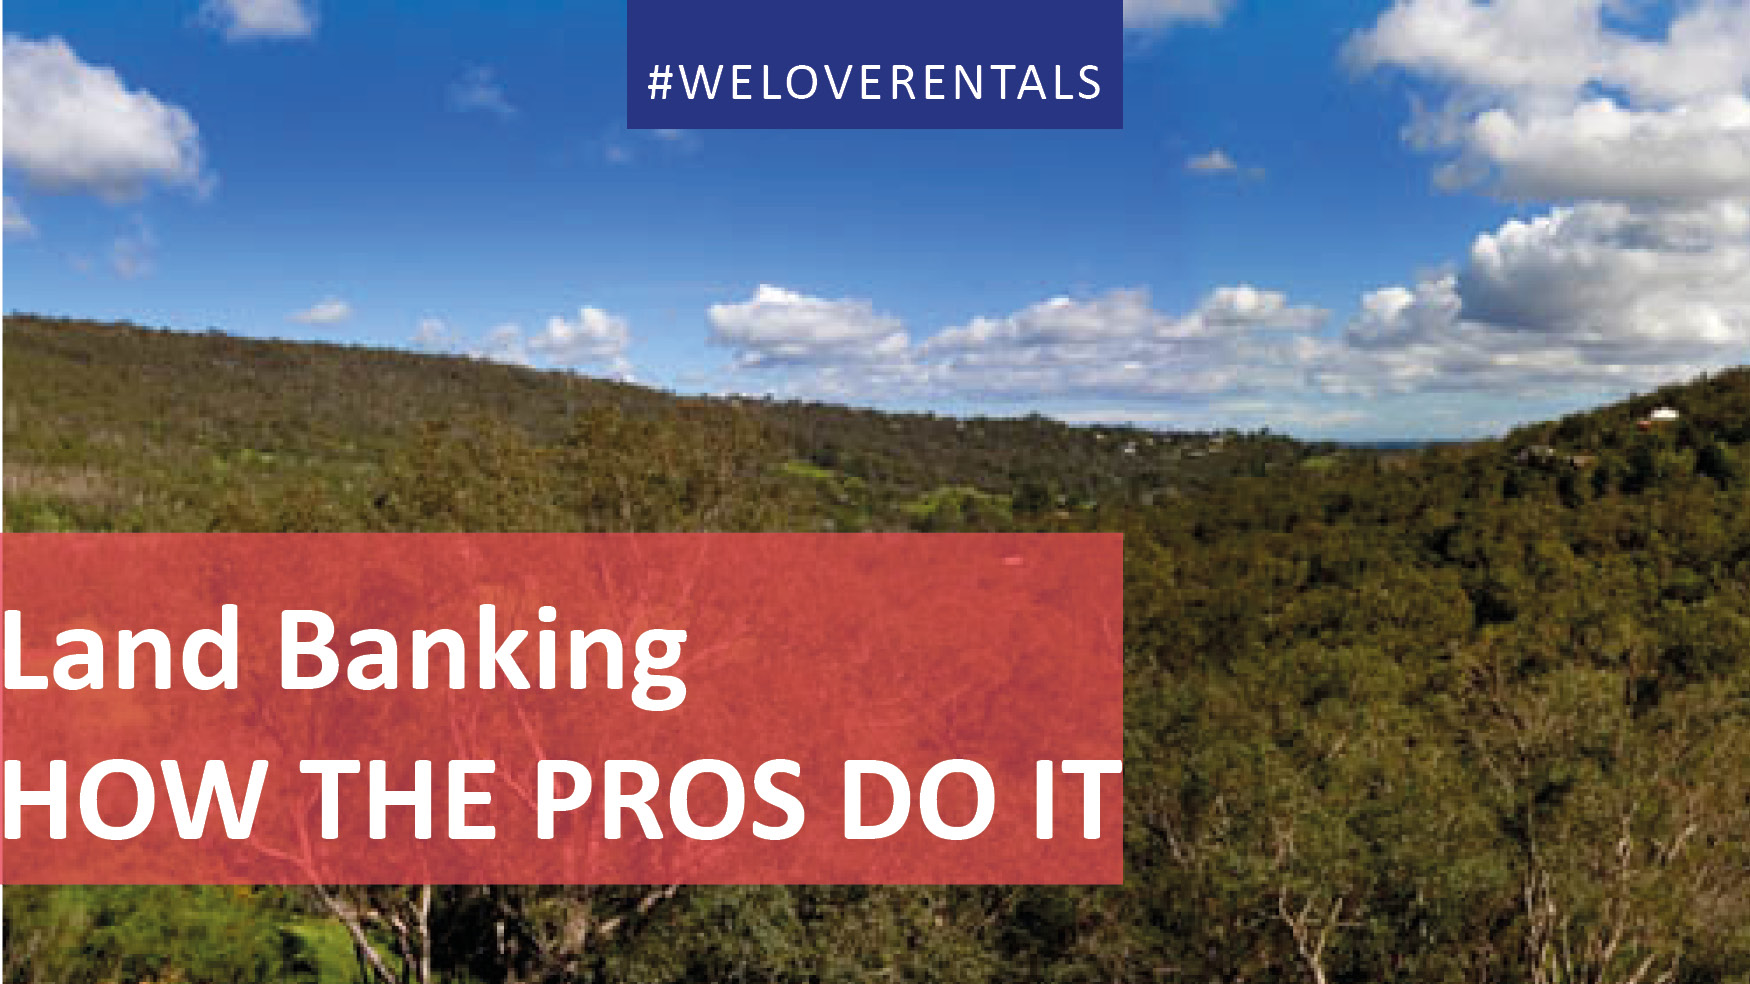 We Love Rentals Land Banking How The Pros Do It